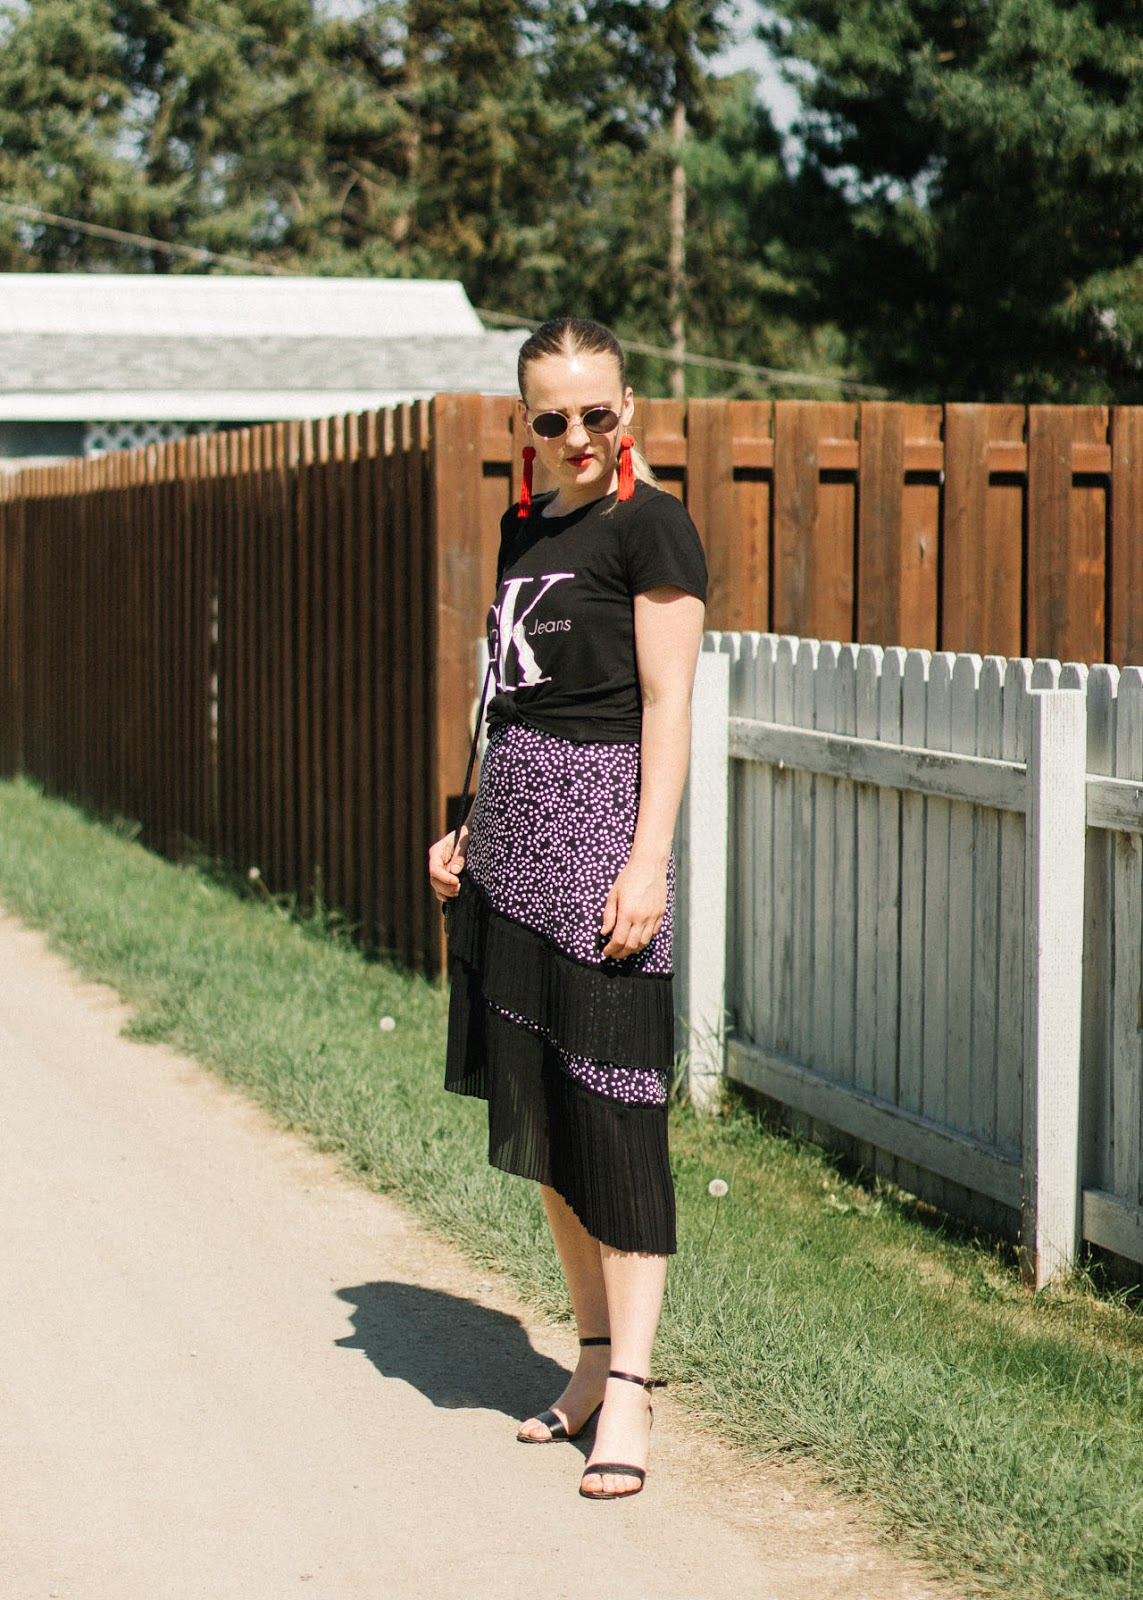 Calvin Klein t-shirt - H&M dress - In My Dreams - Canadian Fashion Blogger outfit